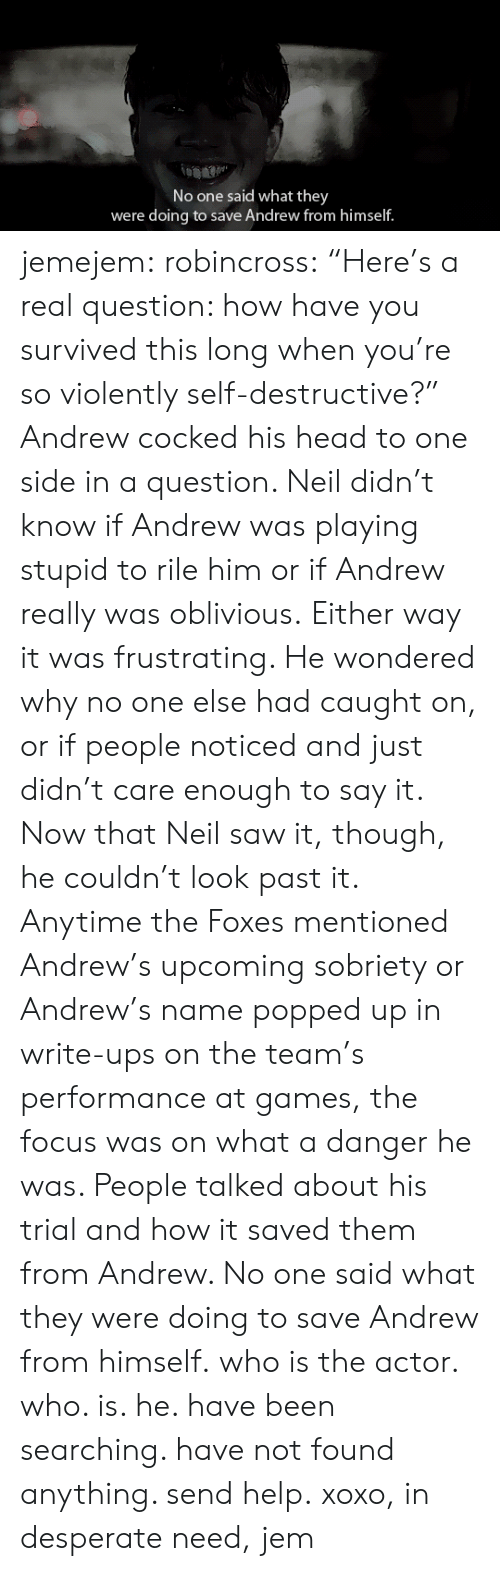 """Who Is He: No one said what they  were doing to save Andrew from himself. jemejem:  robincross:   """"Here's a real question: how have you survived this long when you're so violently self-destructive?""""  Andrew cocked his head to one side in a question. Neil didn't know if  Andrew was playing stupid to rile him or if Andrew really was oblivious.  Either way it was frustrating. He wondered why no one else had caught  on, or if people noticed and just didn't care enough to say it. Now that  Neil saw it, though, he couldn't look past it. Anytime the Foxes  mentioned Andrew's upcoming sobriety or Andrew's name popped up in  write-ups on the team's performance at games, the focus was on what a  danger he was. People talked about his trial and how it saved them from  Andrew. No one said what they were doing to save Andrew from himself.    who is the actor. who. is. he. have been searching. have not found anything. send help.xoxo, in desperate need, jem"""